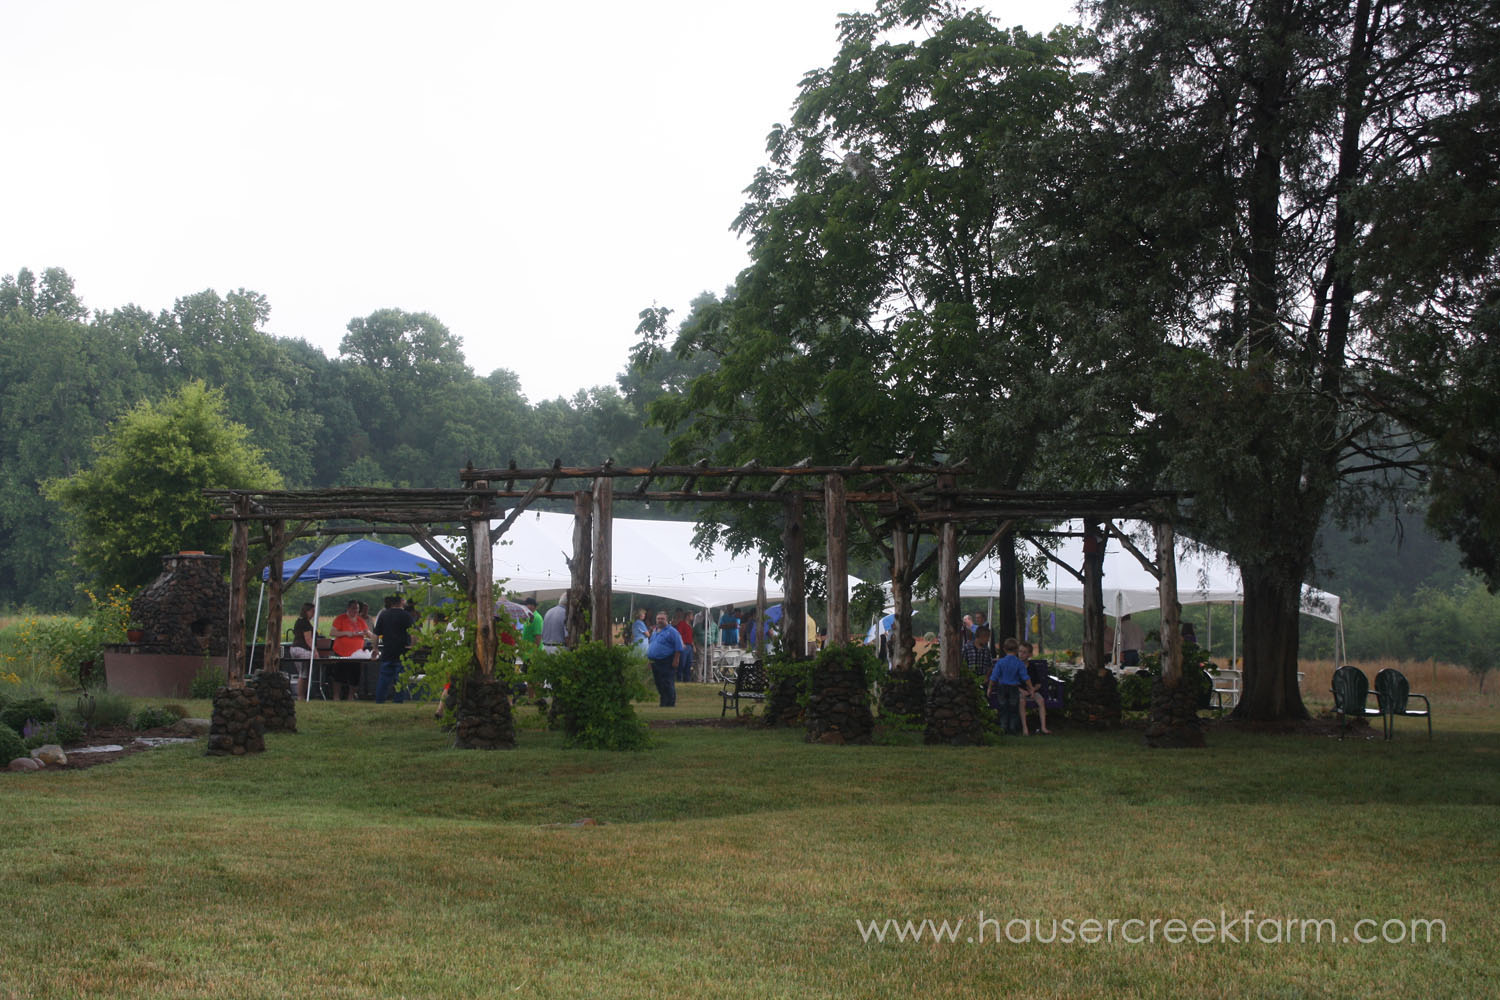 rainy-wedding-day-at-hauser-creek-farm-nc-4539.jpg